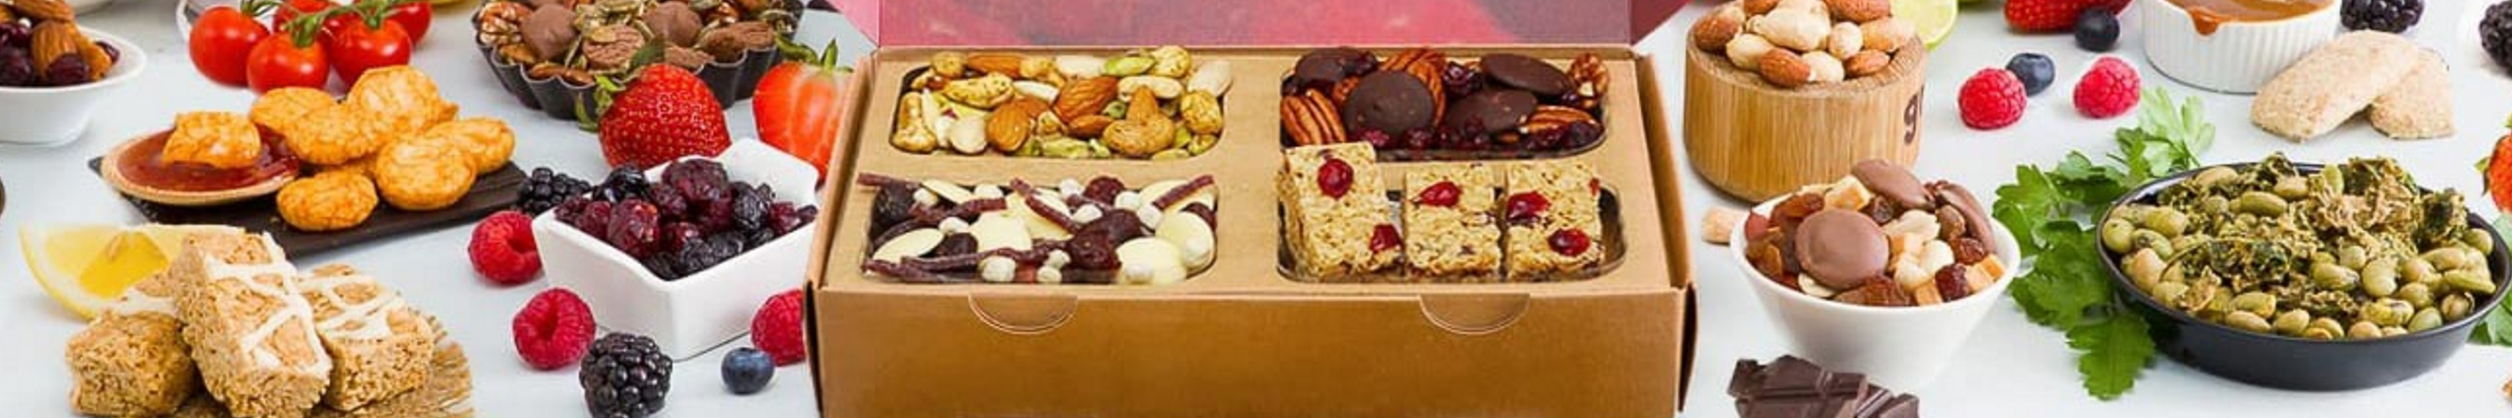 Healthy Variety Snacks with Graze.com